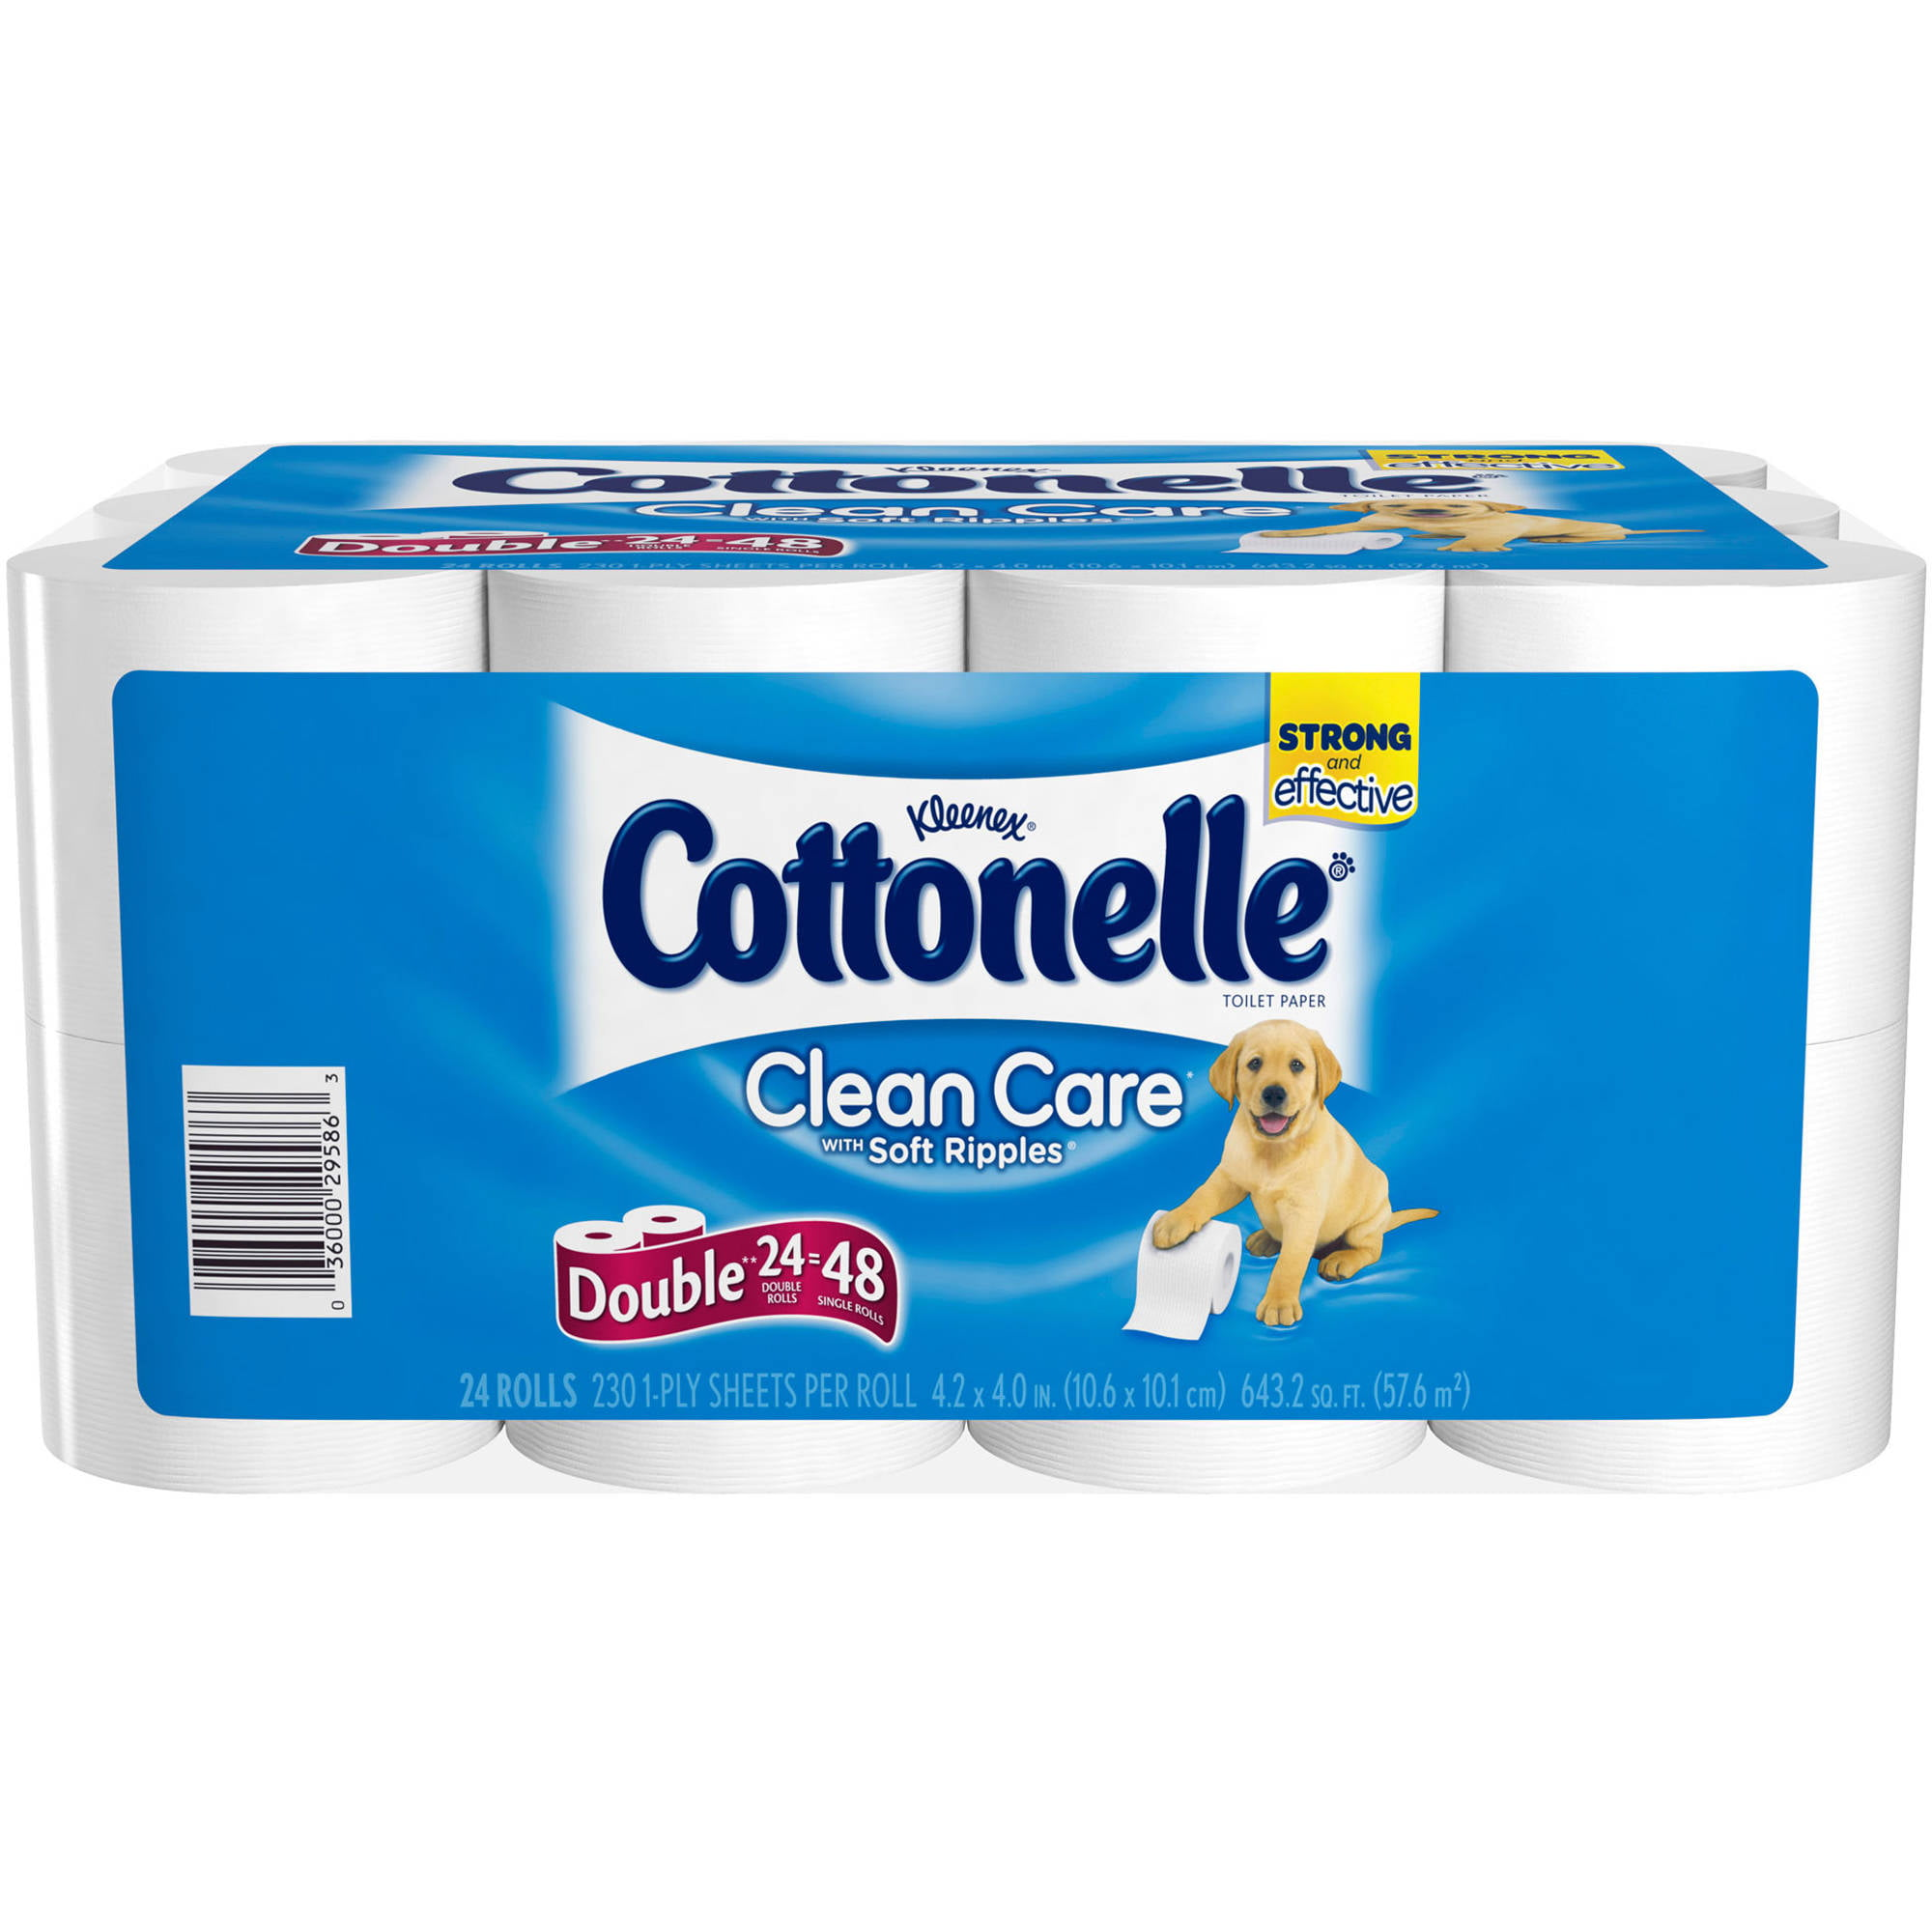 Cottonelle Clean Care Double Roll Toilet Paper, 190 sHeets, 24 ct by KIMBERLY-CLARK